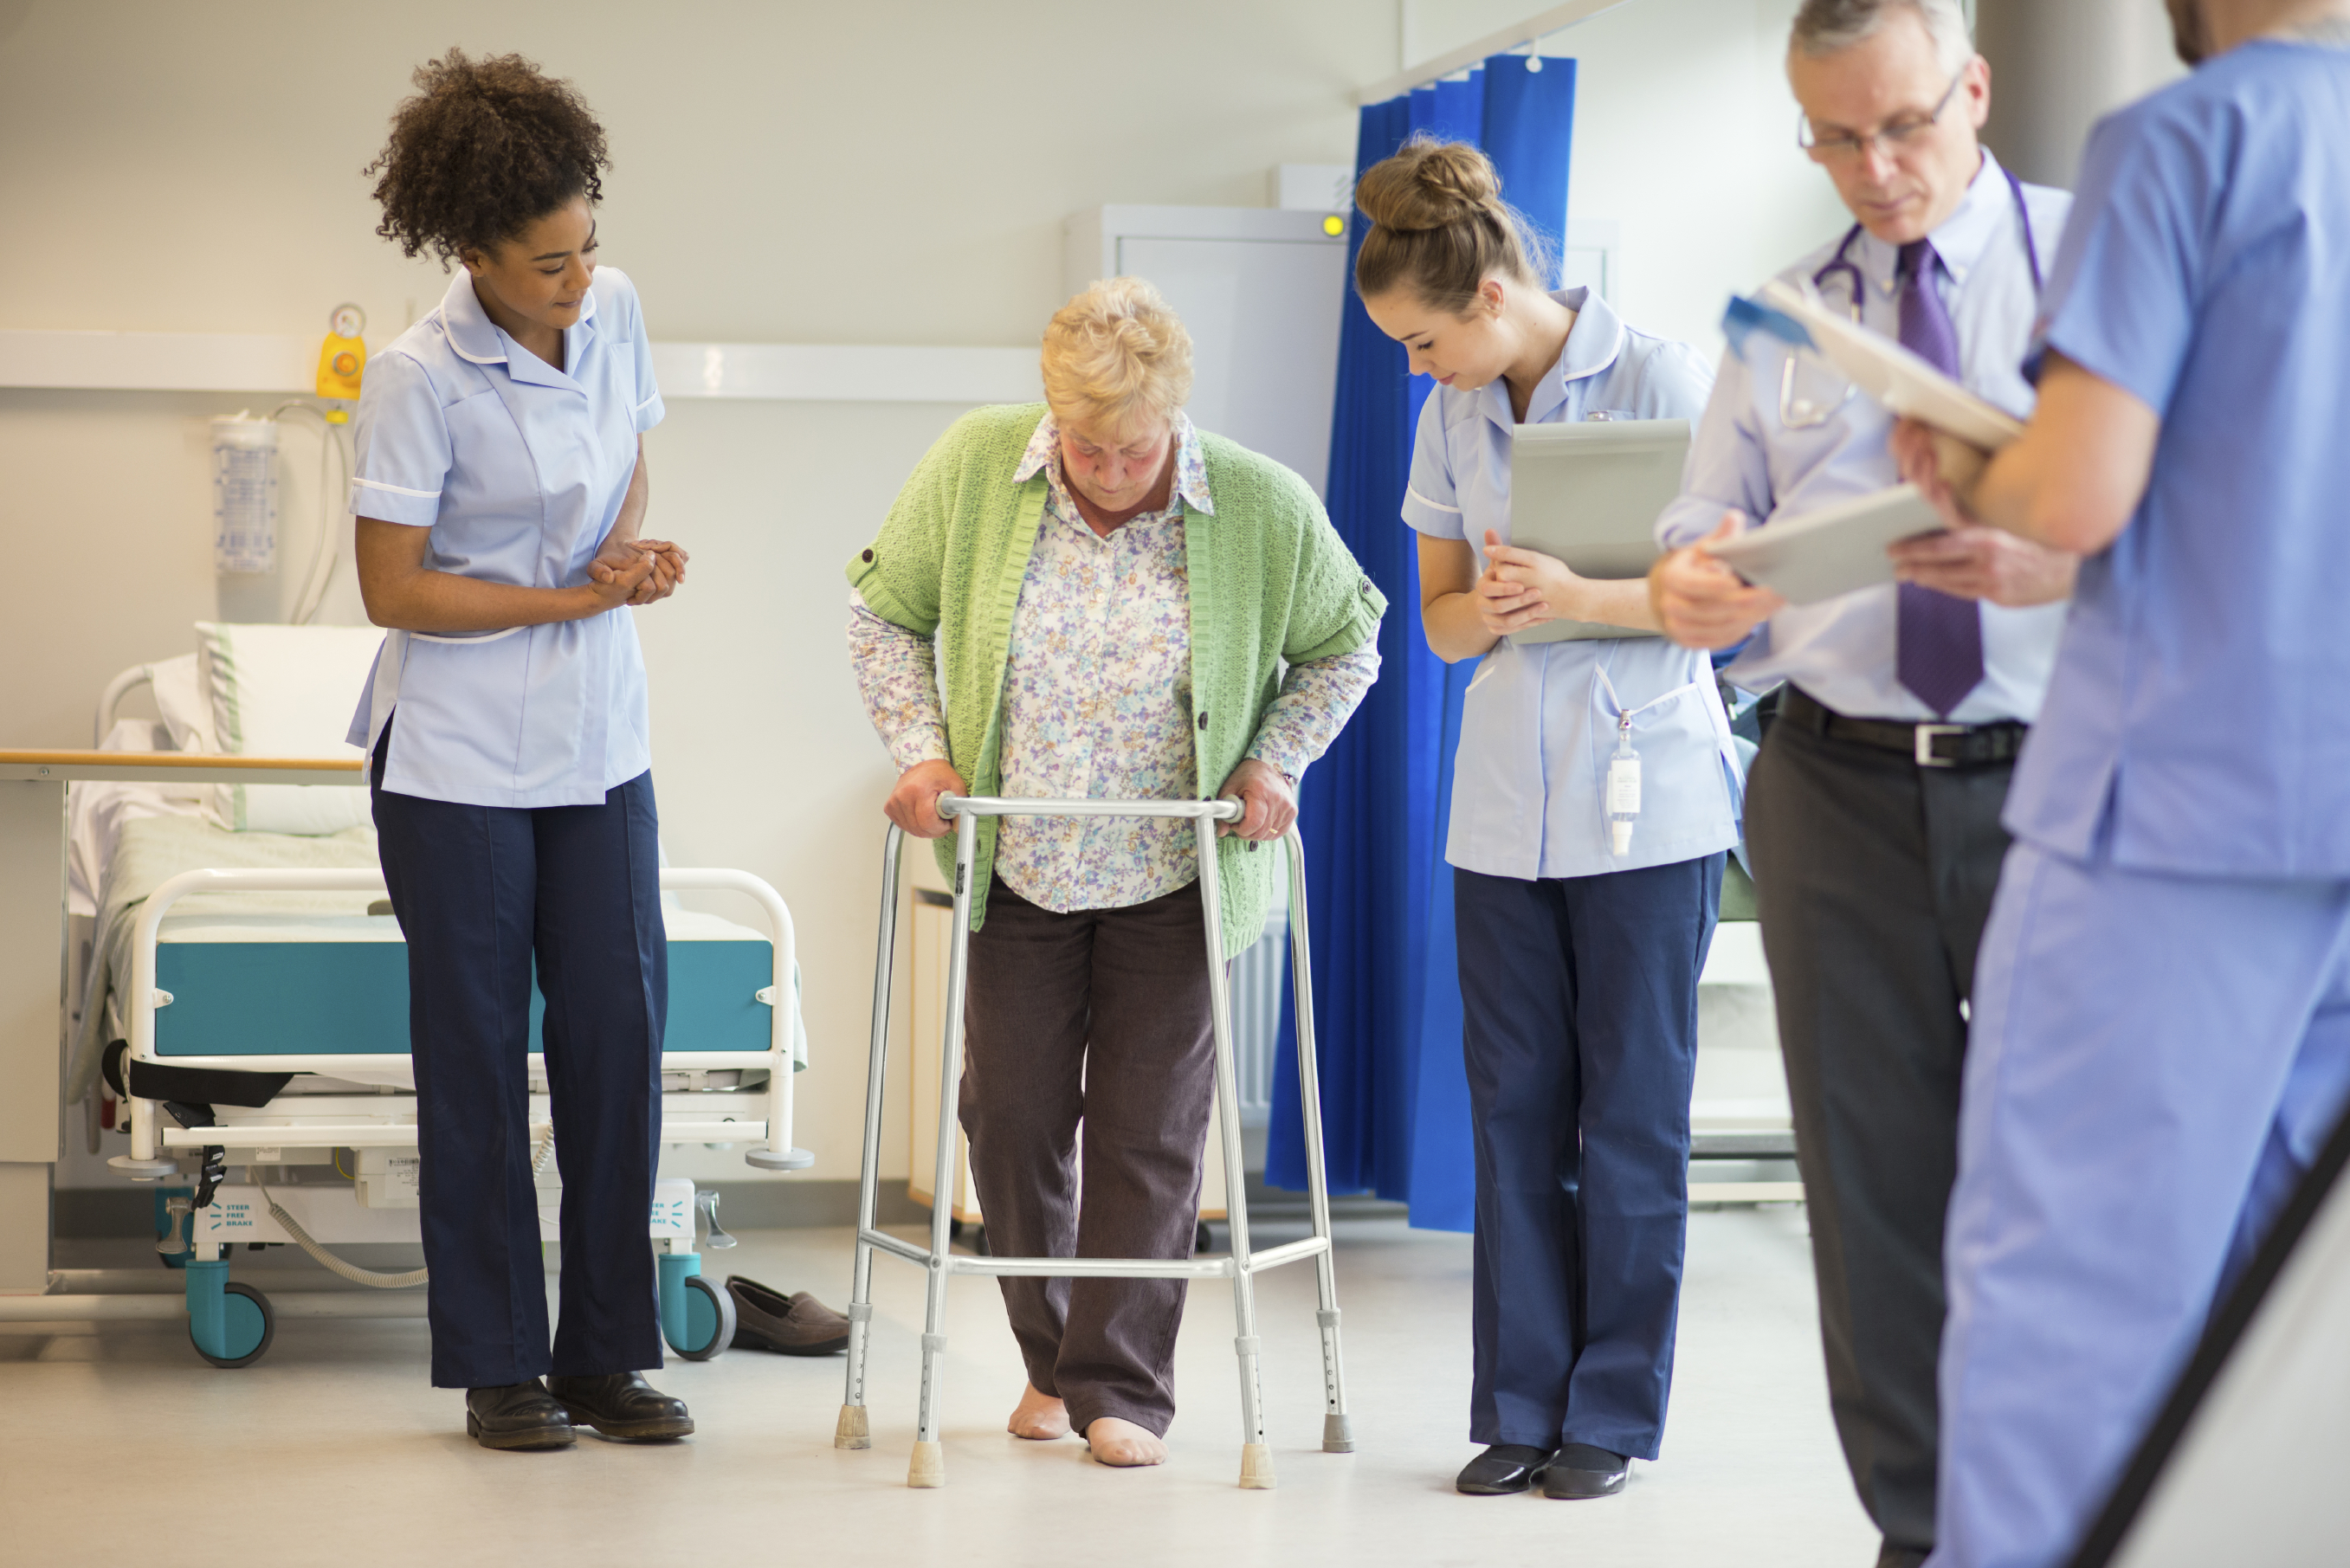 This photo shows a senior patient using a walking frame on a hospital ward, supported by her health care team.